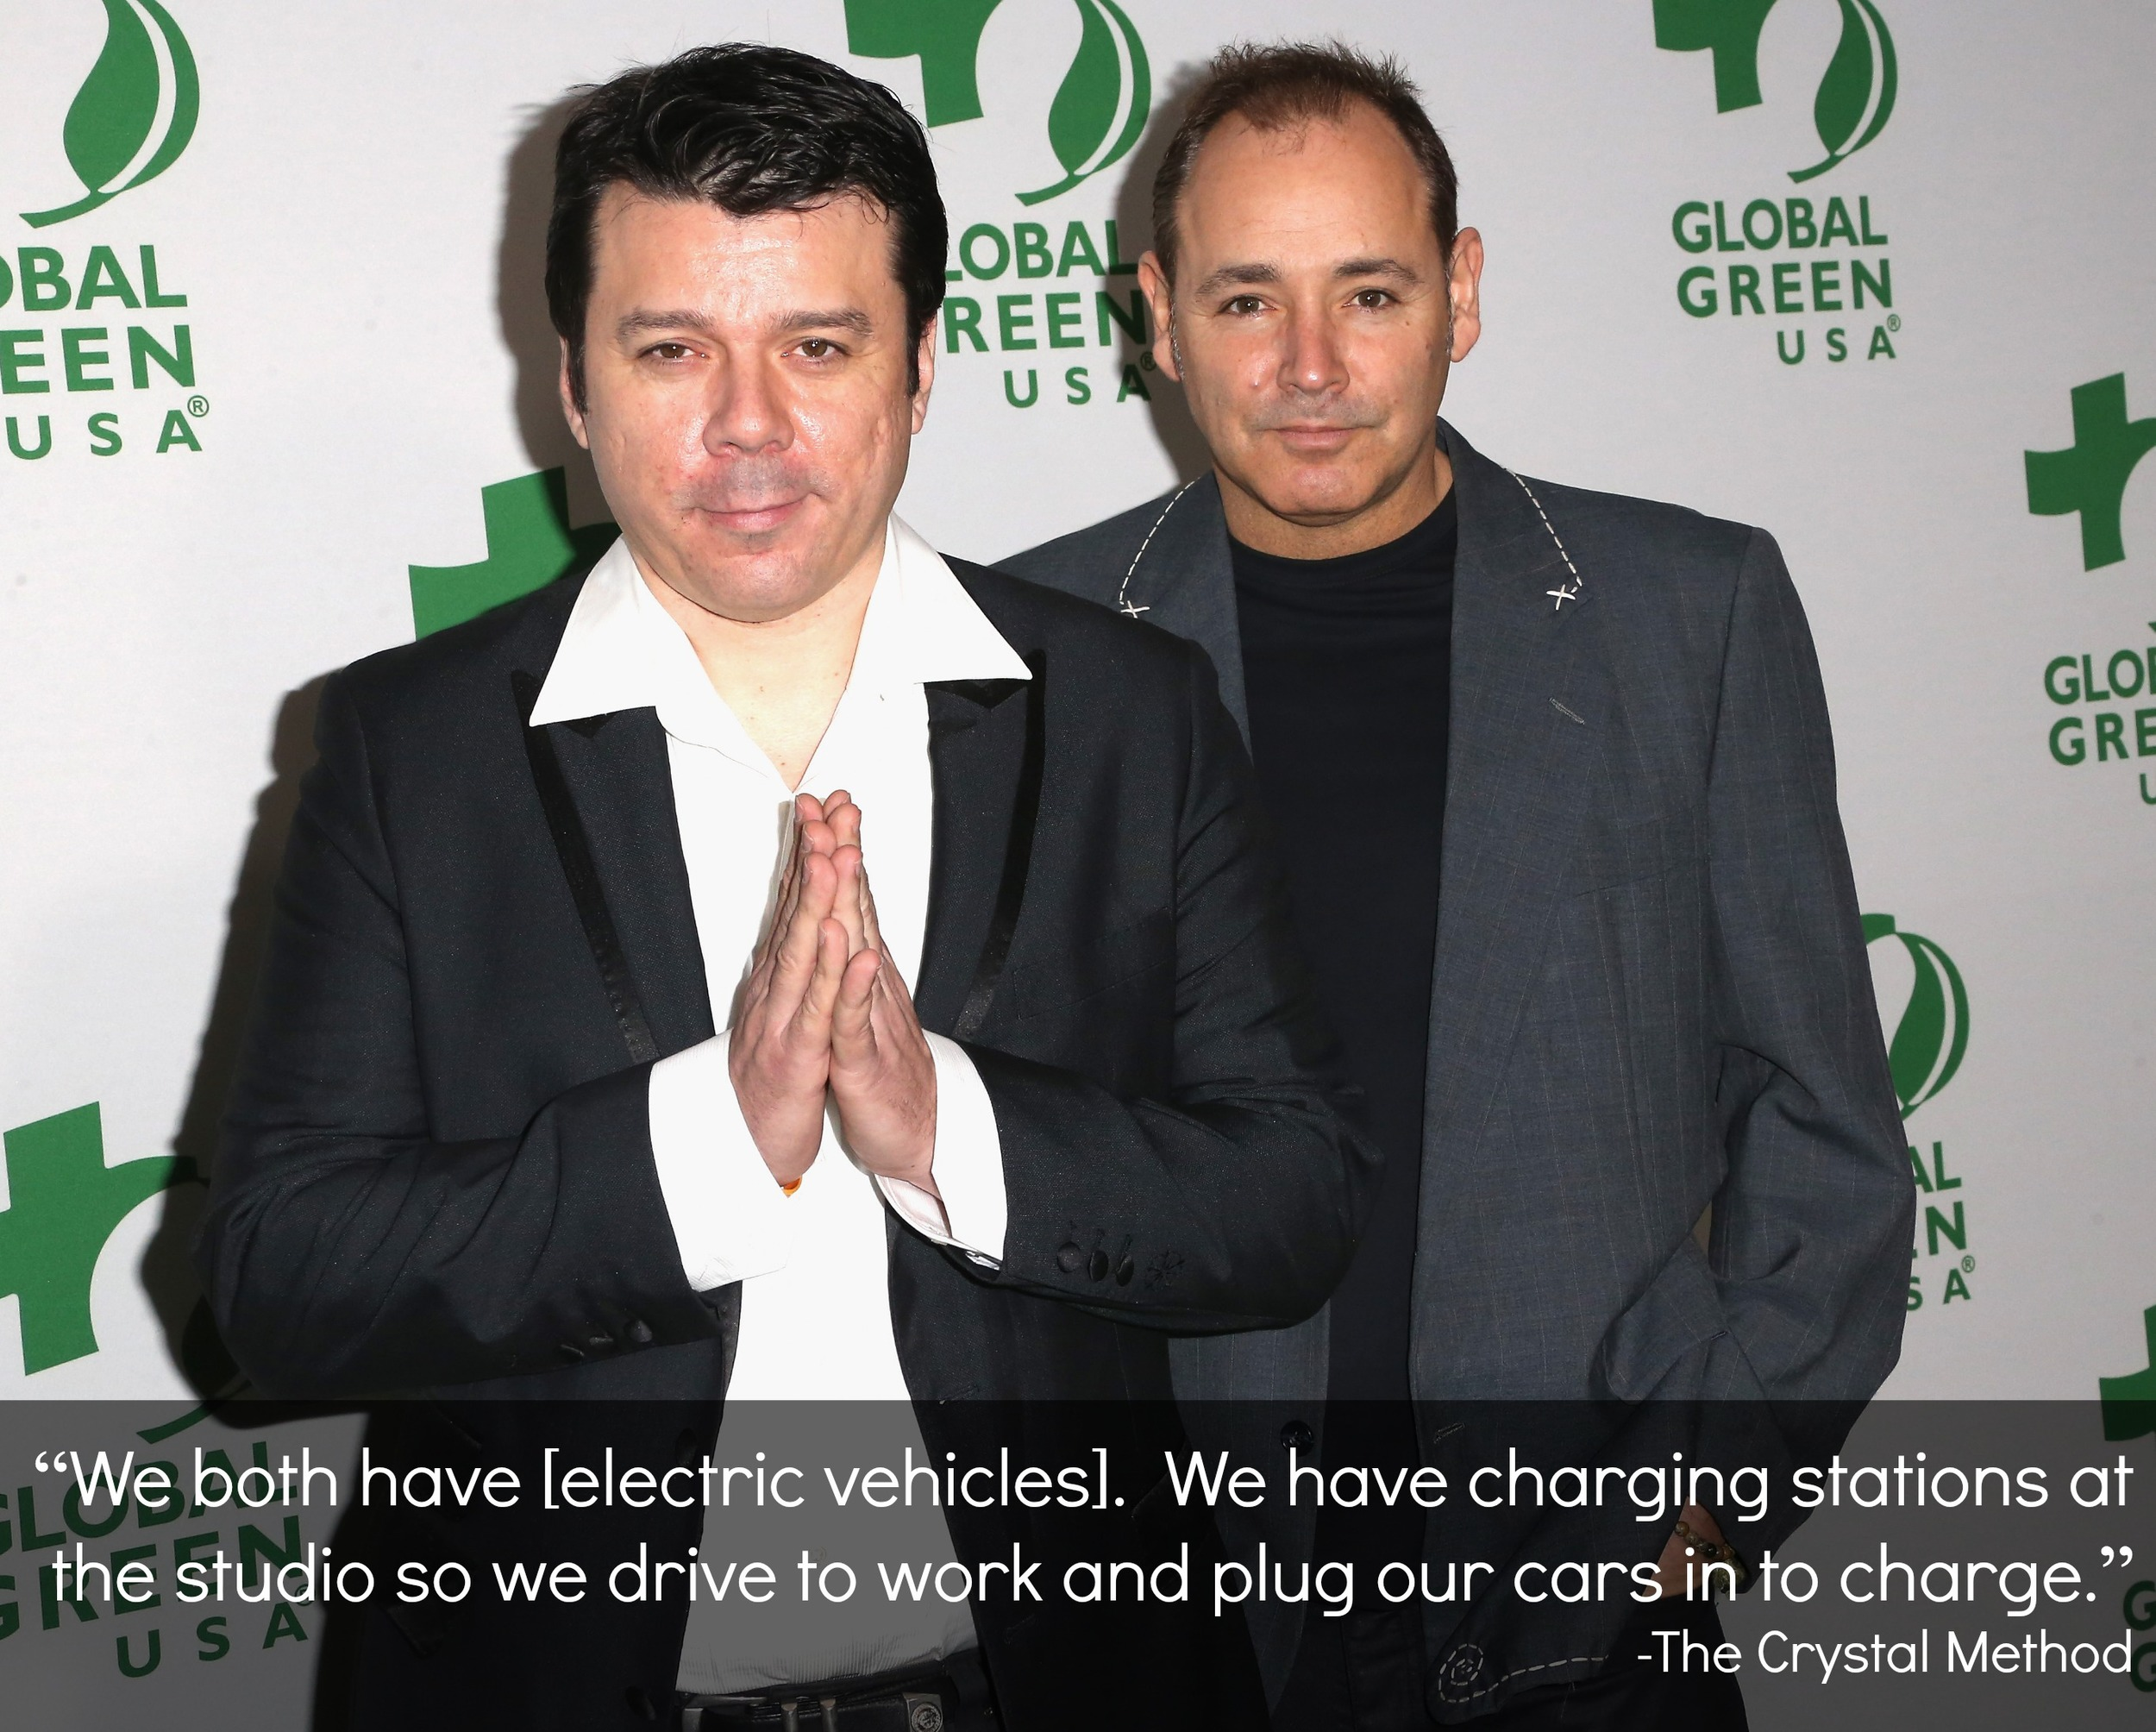 The Crystal Method Quote